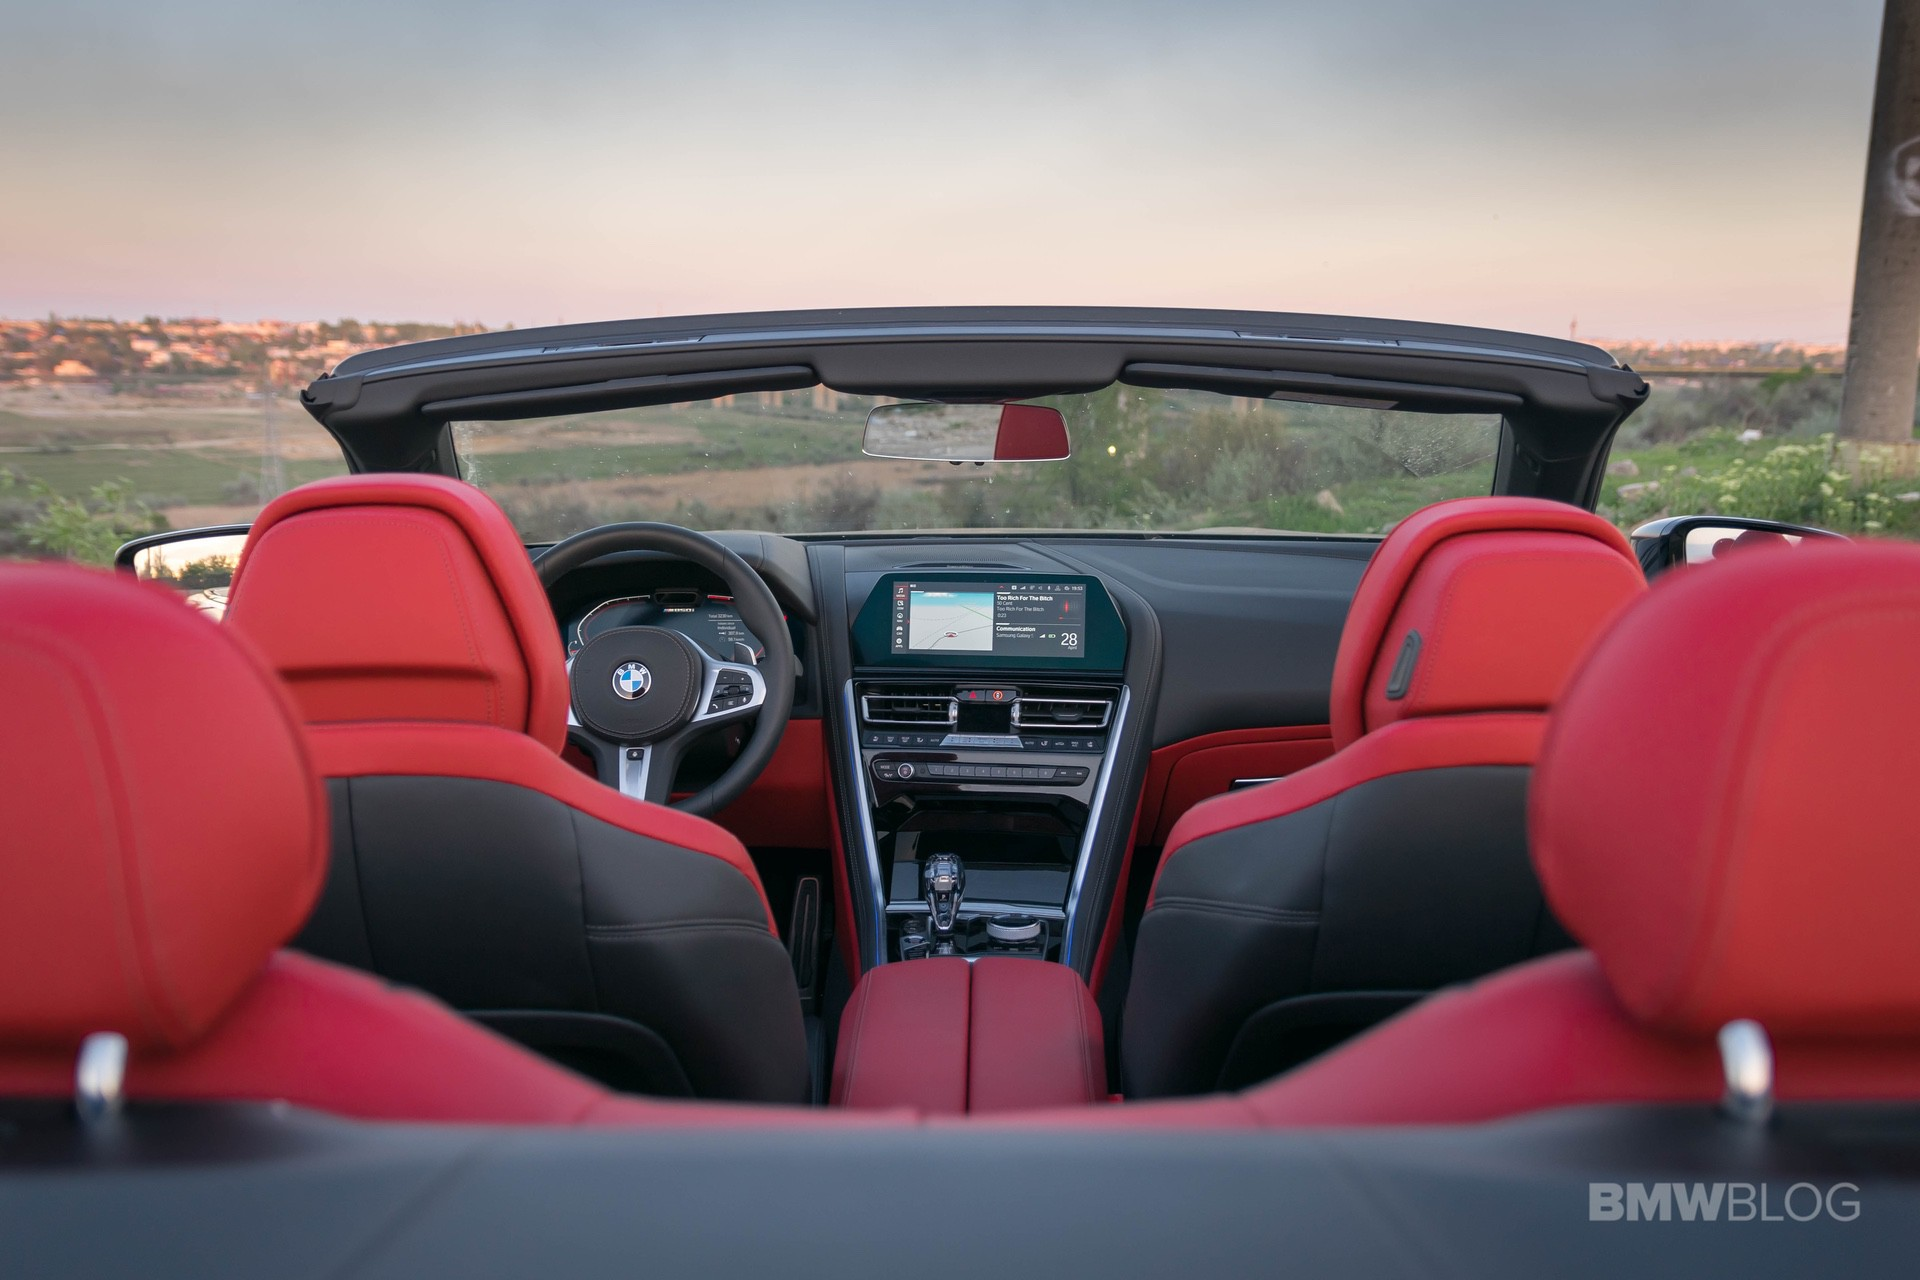 VIDEO: BMW M850i is one of Wards 10 Best Interiors for 2019